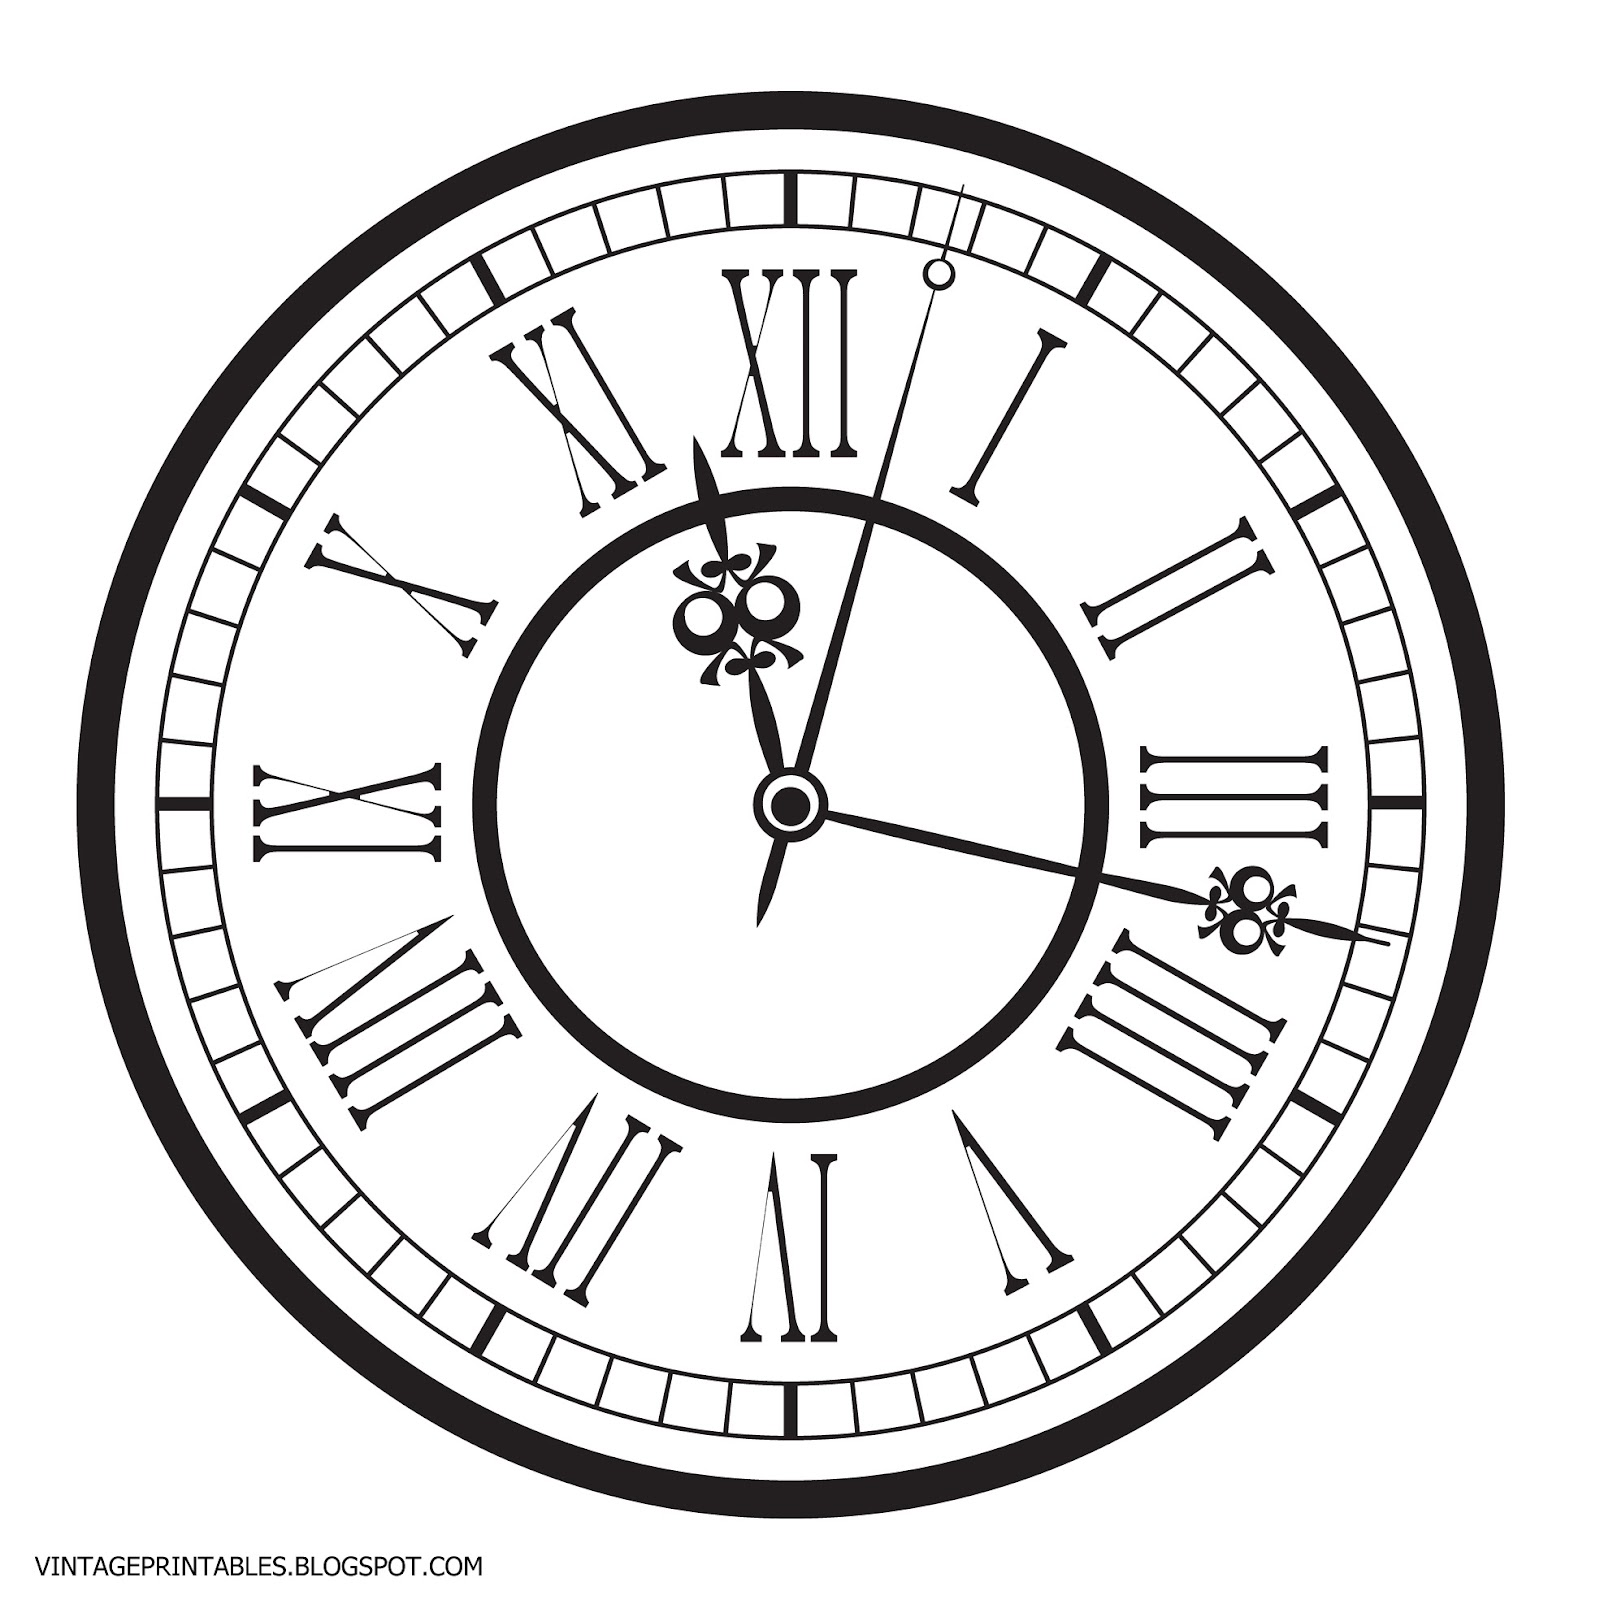 Old Antique Clock Free Clip Art on Clock Face Printable